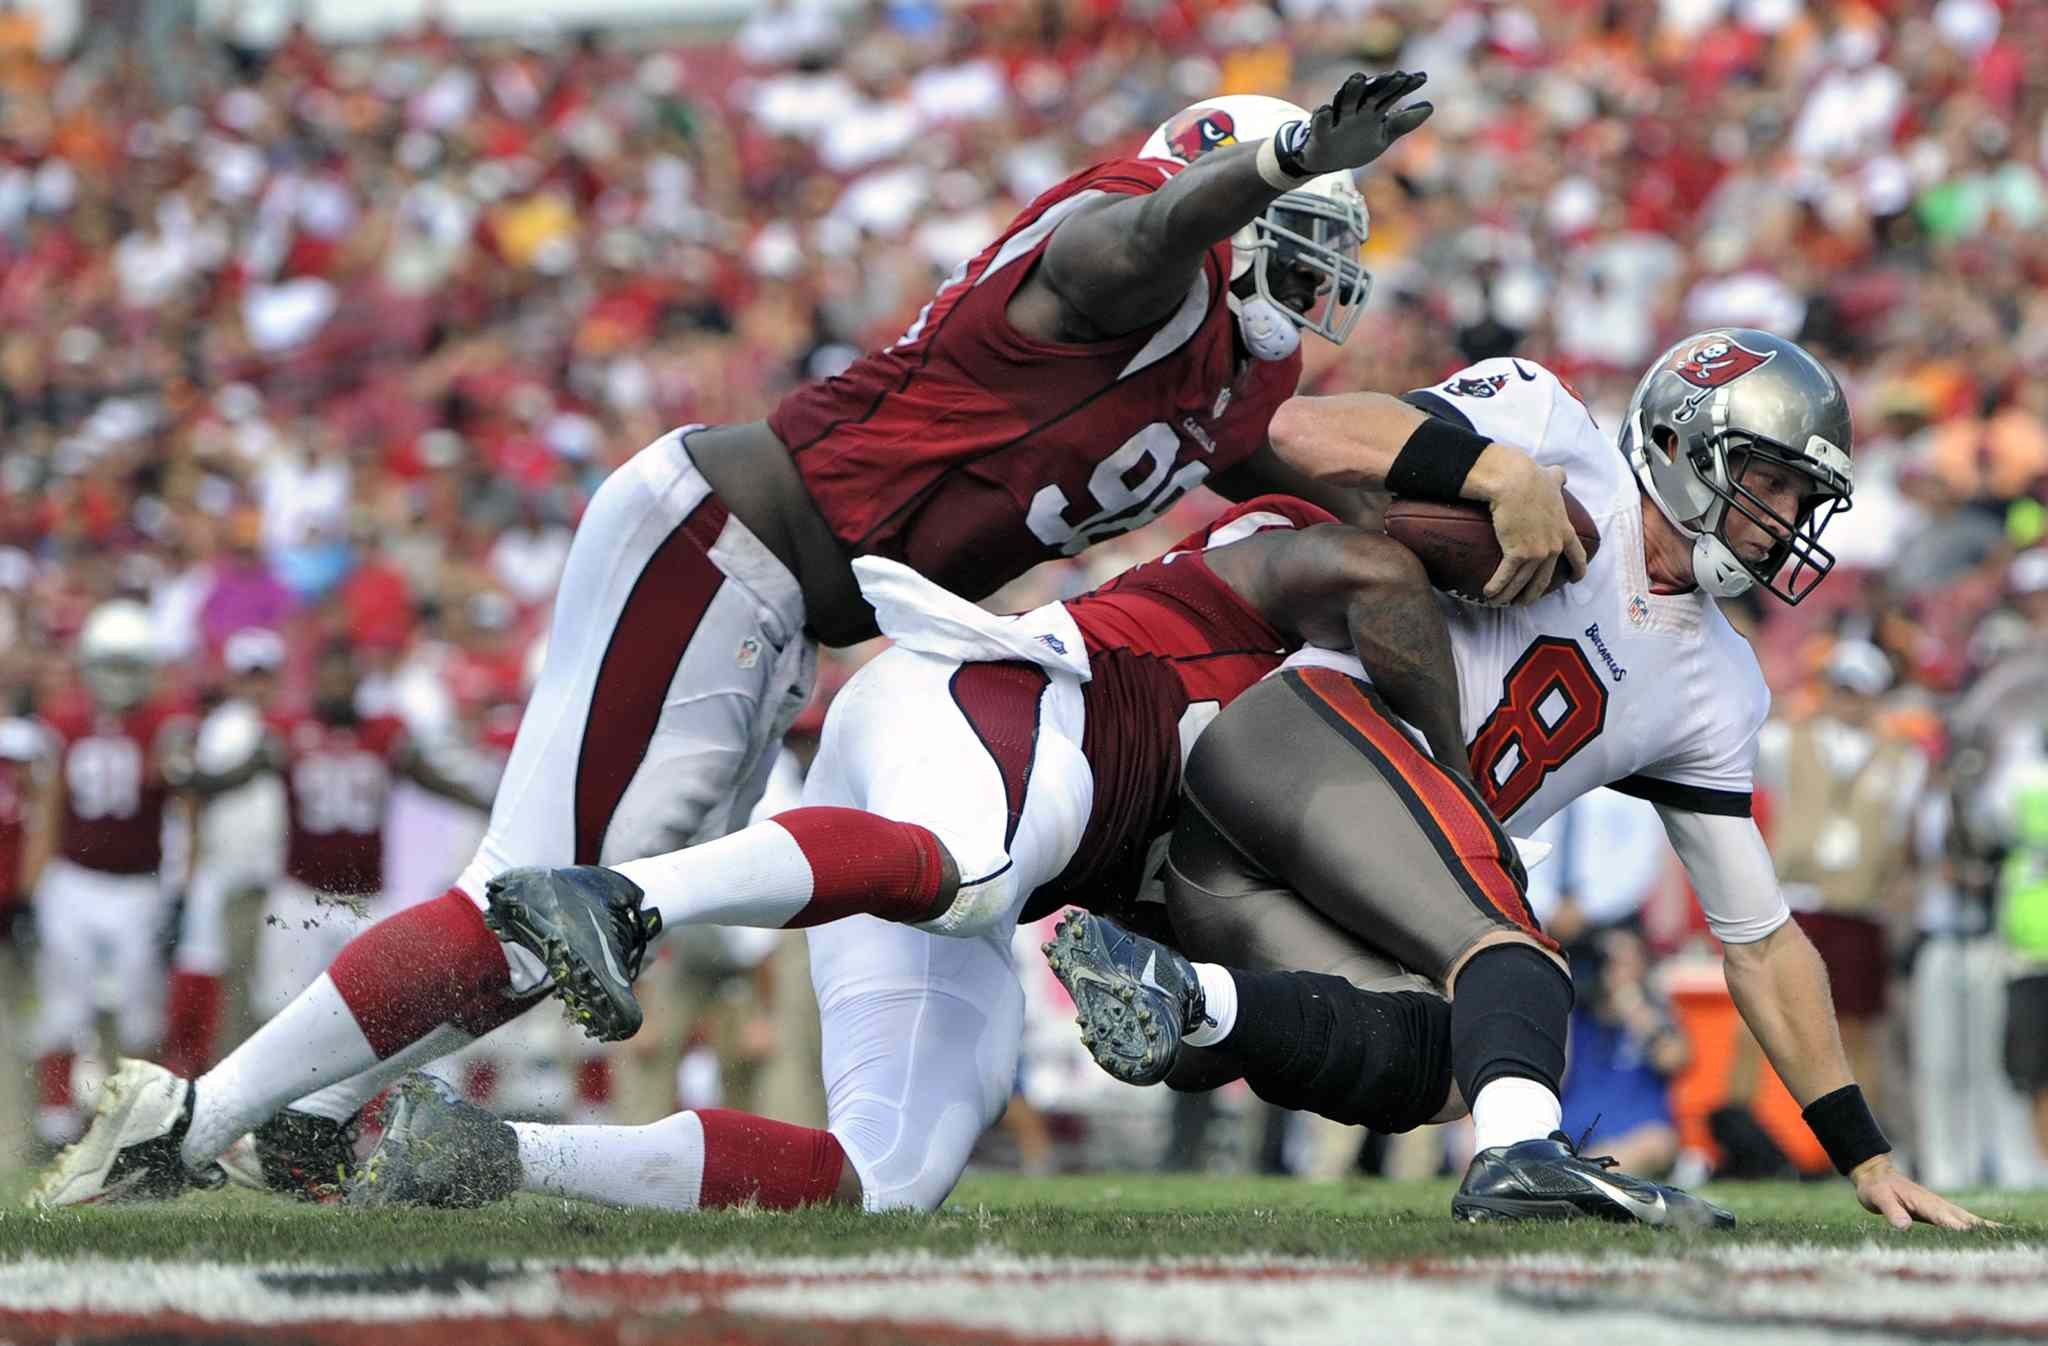 Tampa Bay Buccaneers quarterback Mike Glennon (right) is sacked by Arizona Cardinals Dontay Moch and Frostee Rucker (left) during Arizona's 13-10 win Sunday in Tampa, Fla.